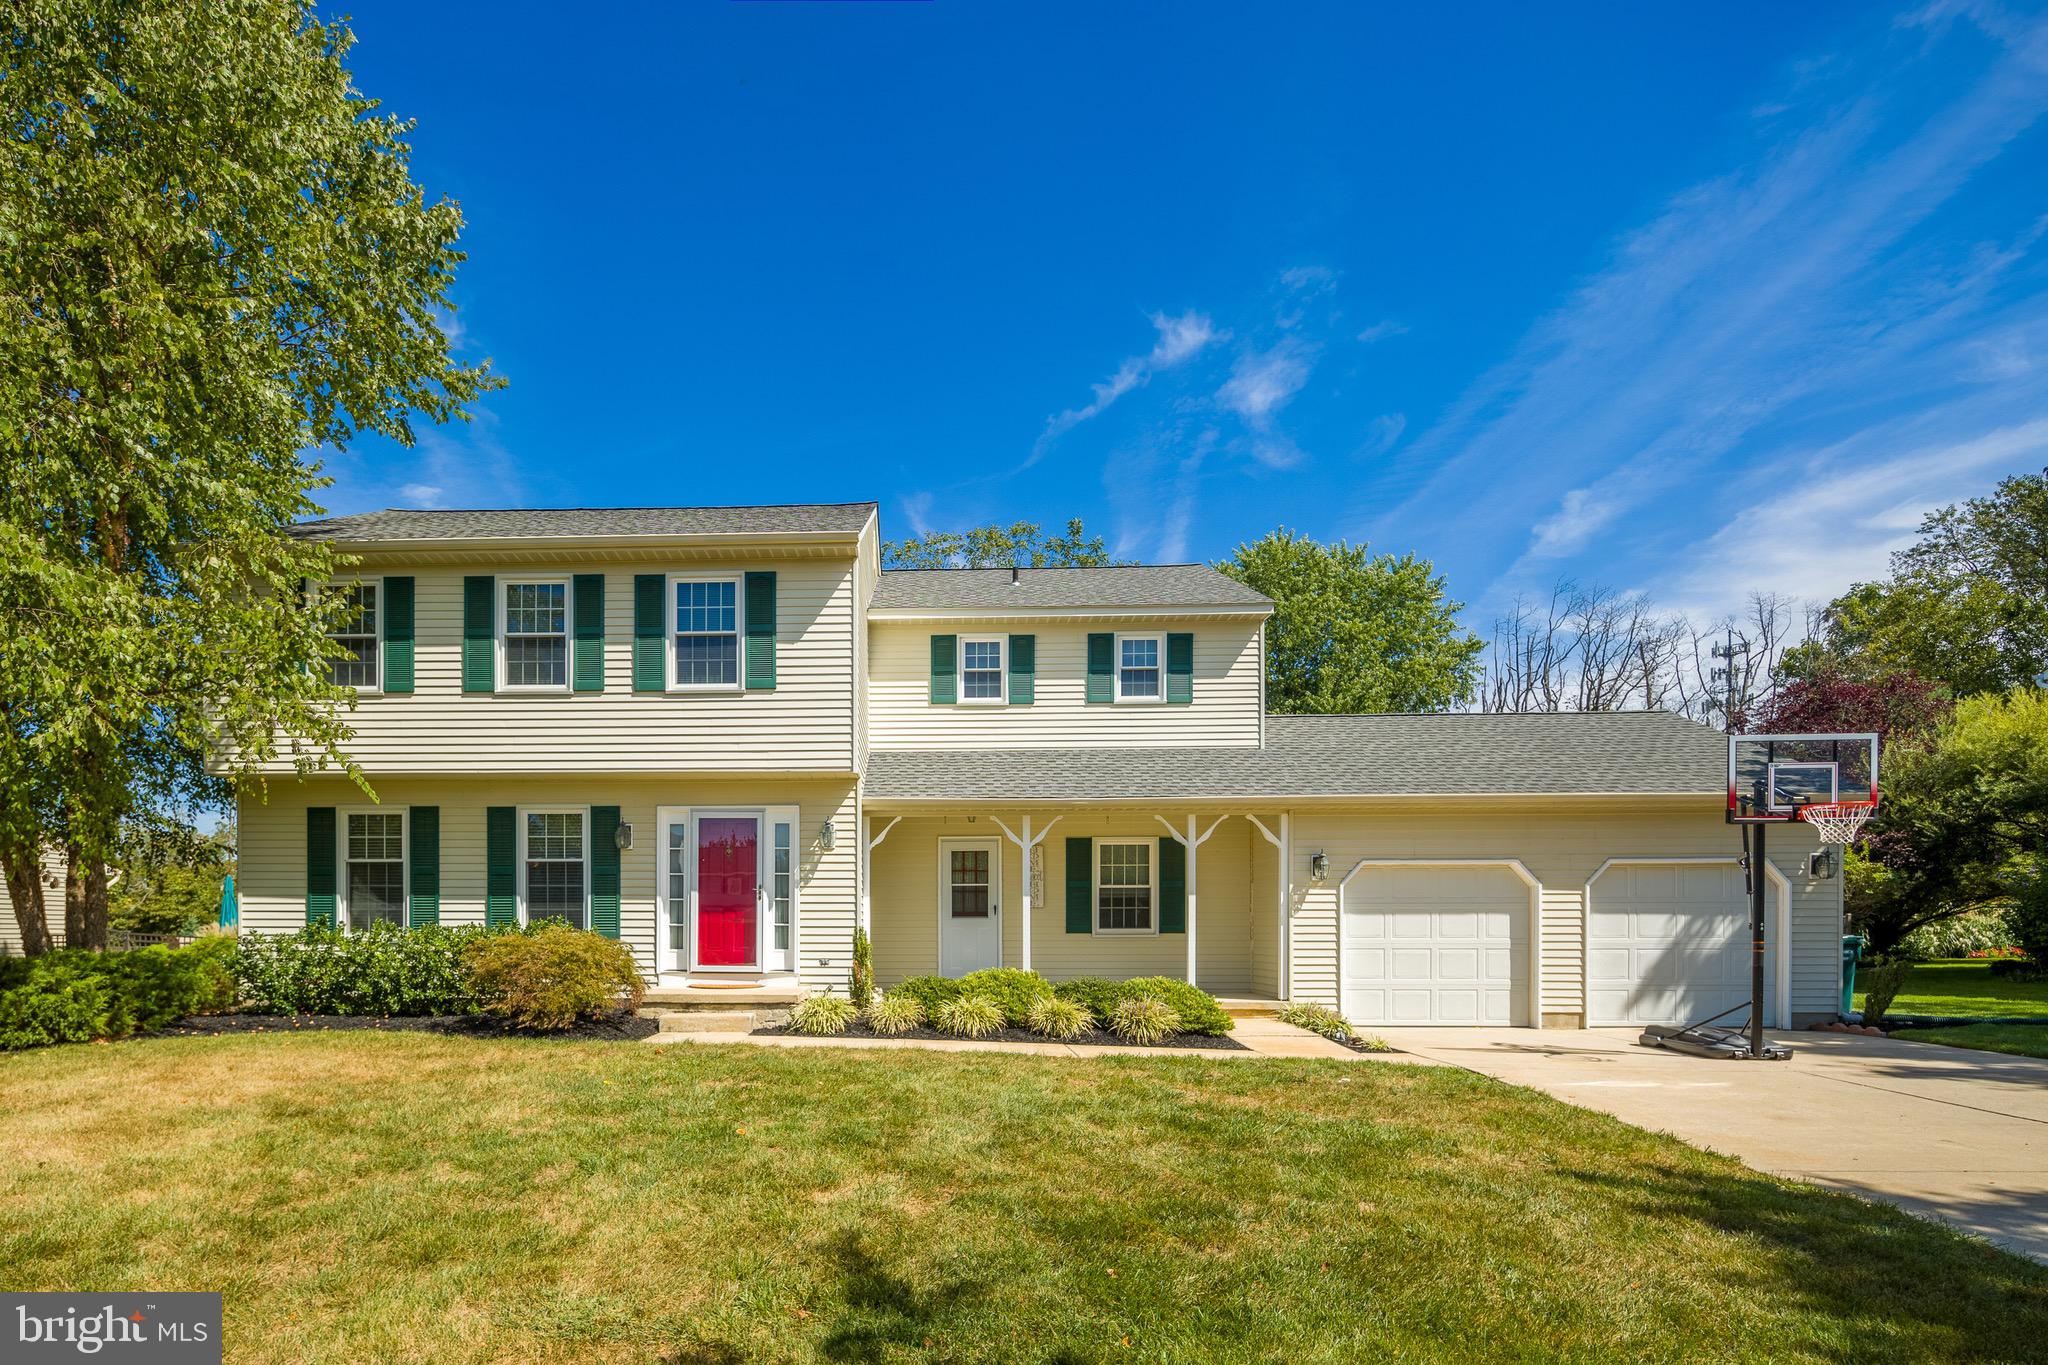 18 CURRIDEN AVENUE, CLARKSBORO, NJ 08020